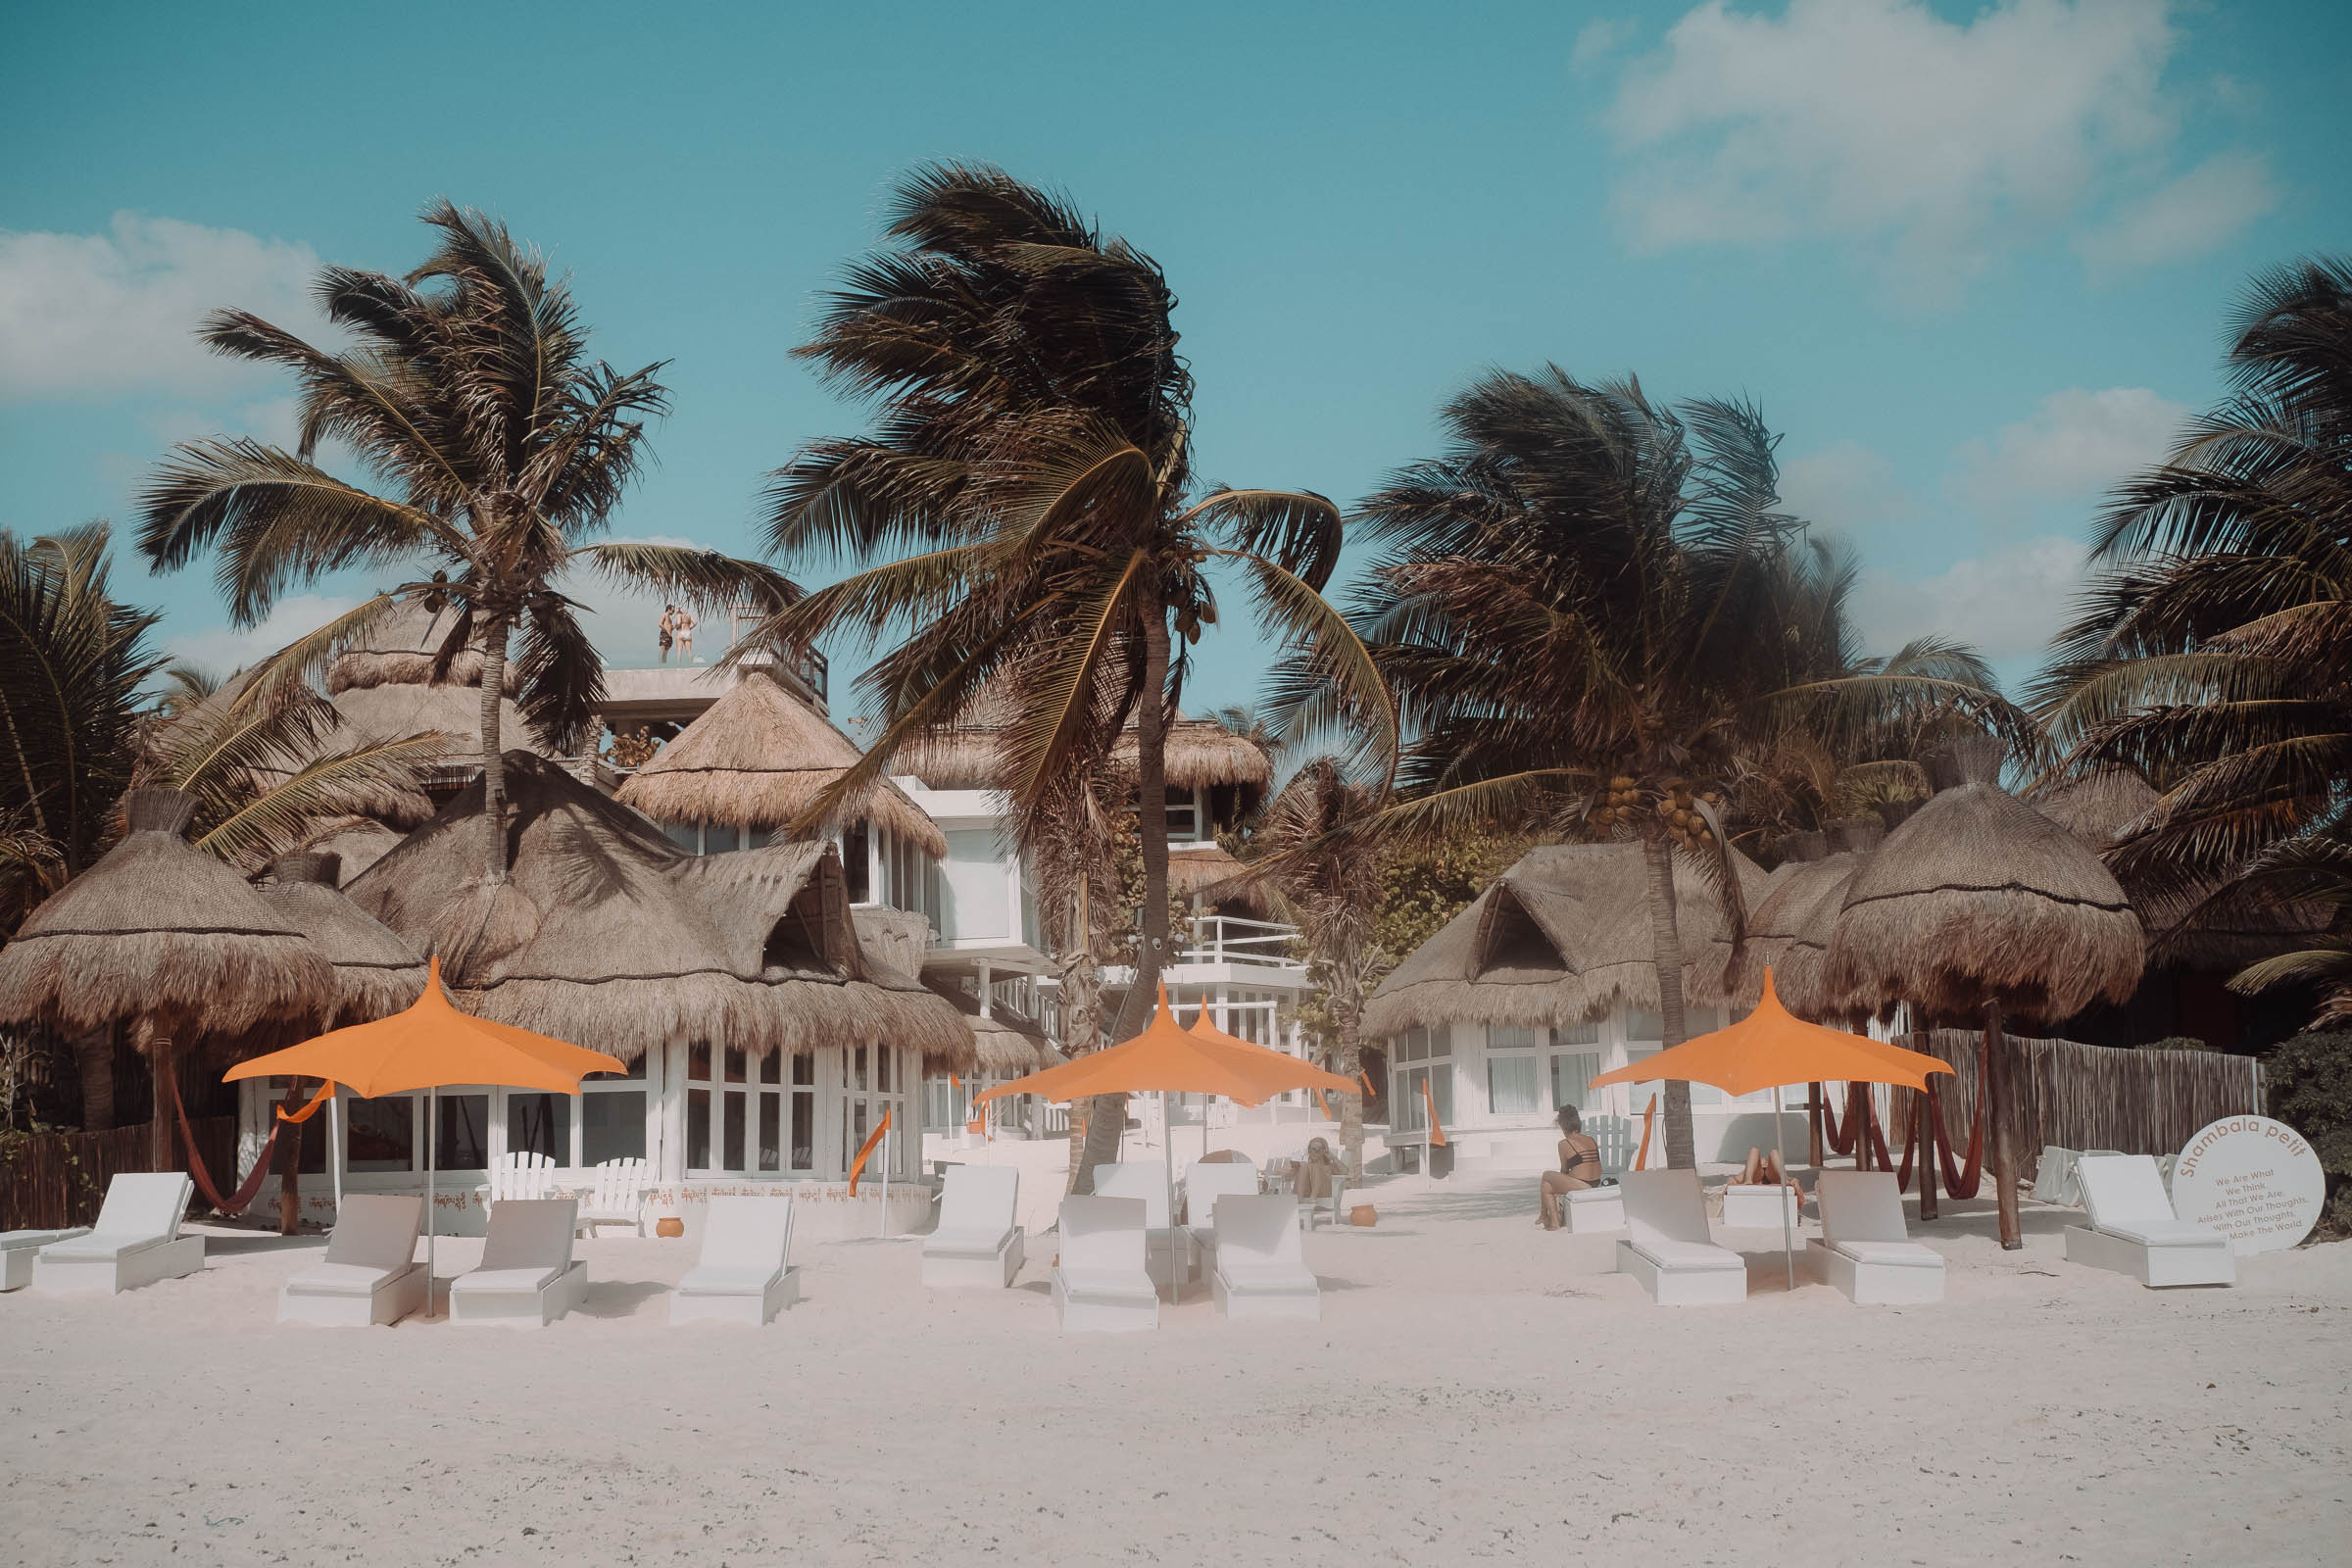 Chacon Images_Mexico2019_Web-47.jpg